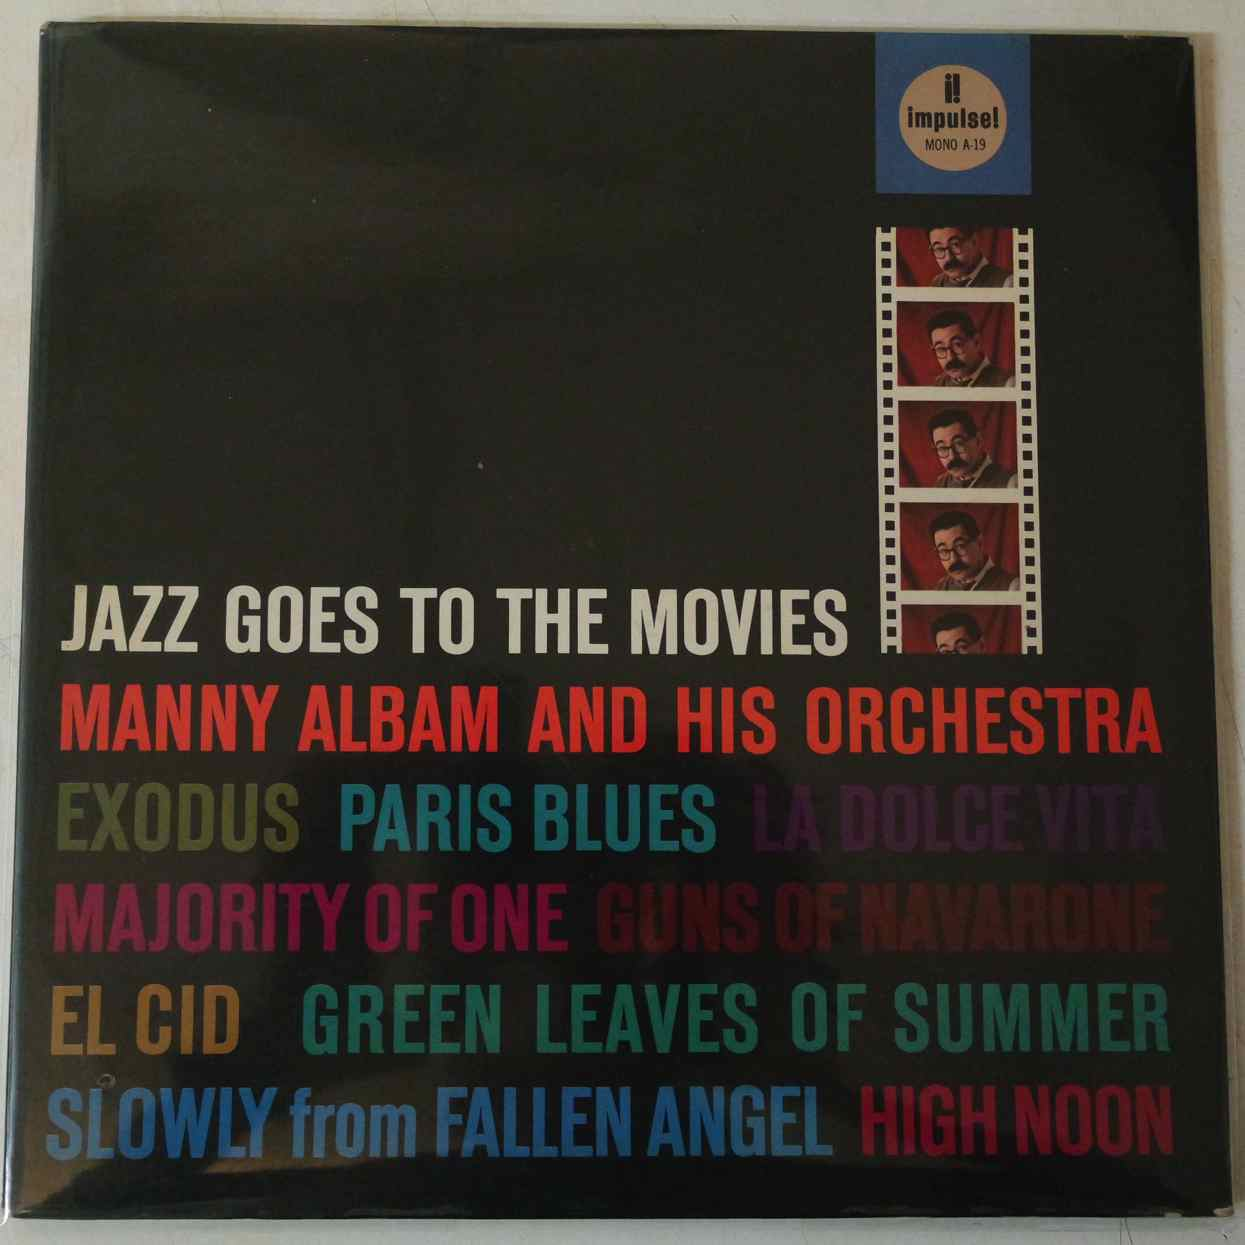 MANNY ALBAM AND HIS ORCHESTRA - Jazz Goes To The Movies - LP